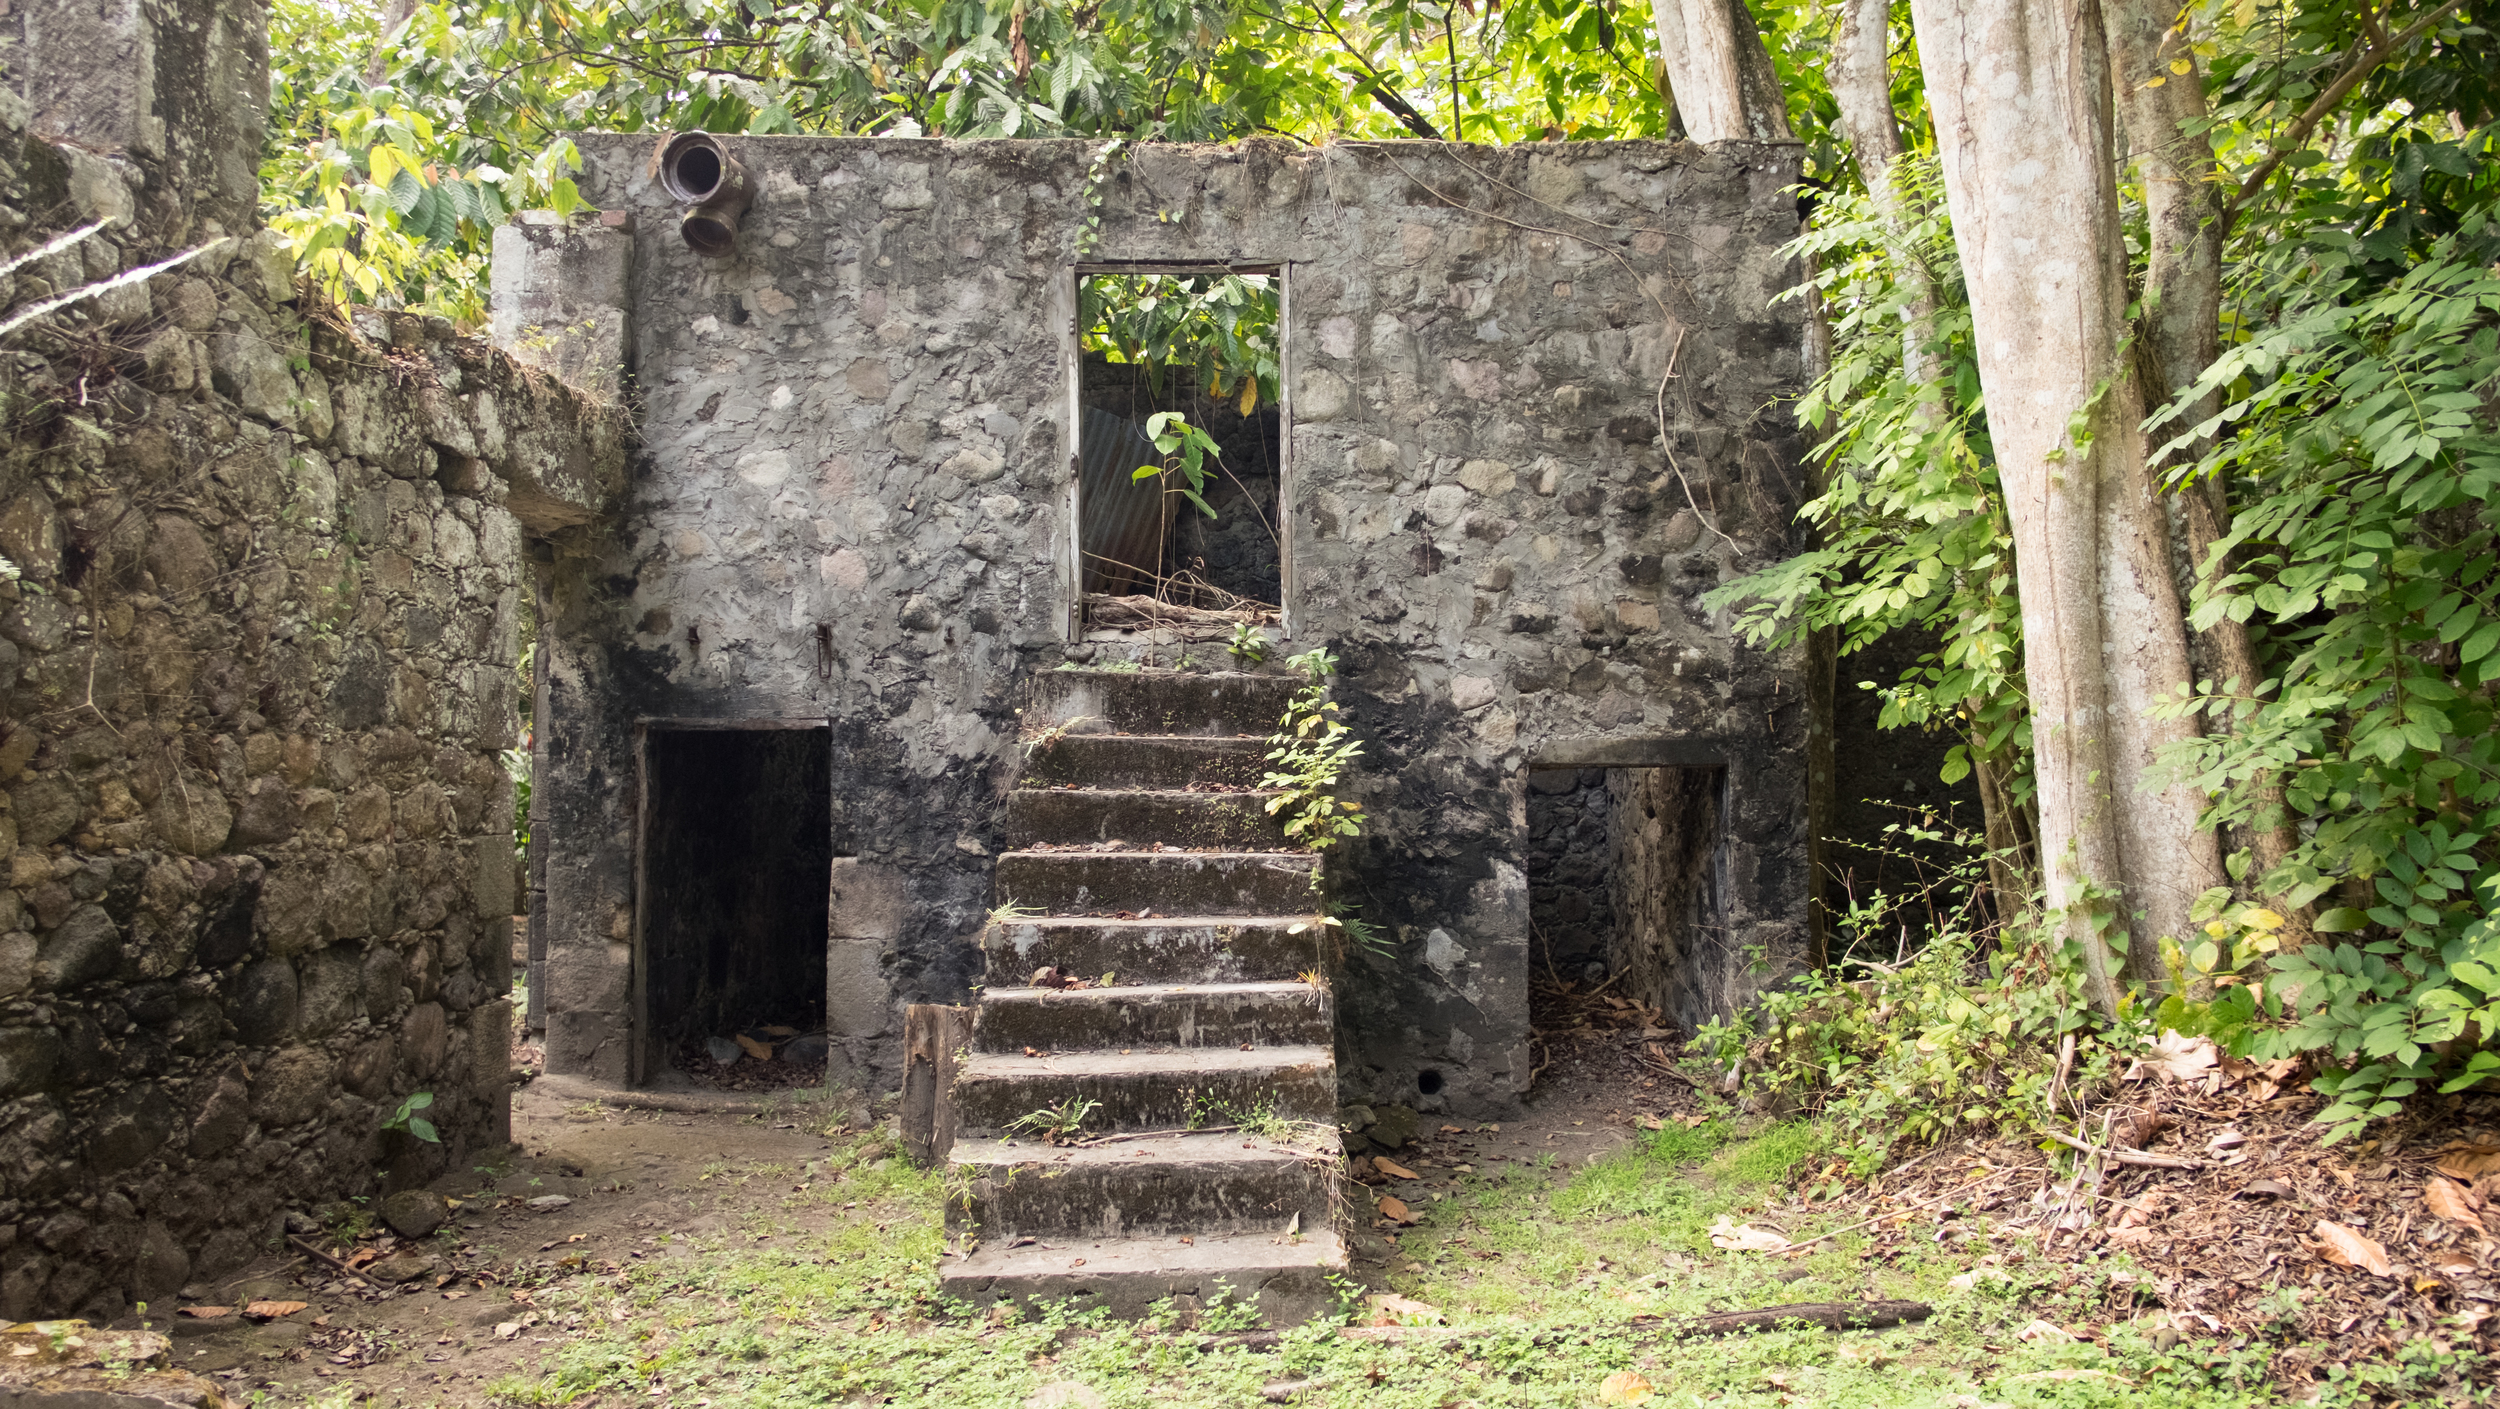 In the building on the left the horses or mules lived below and the slaves lived above up these stairs.